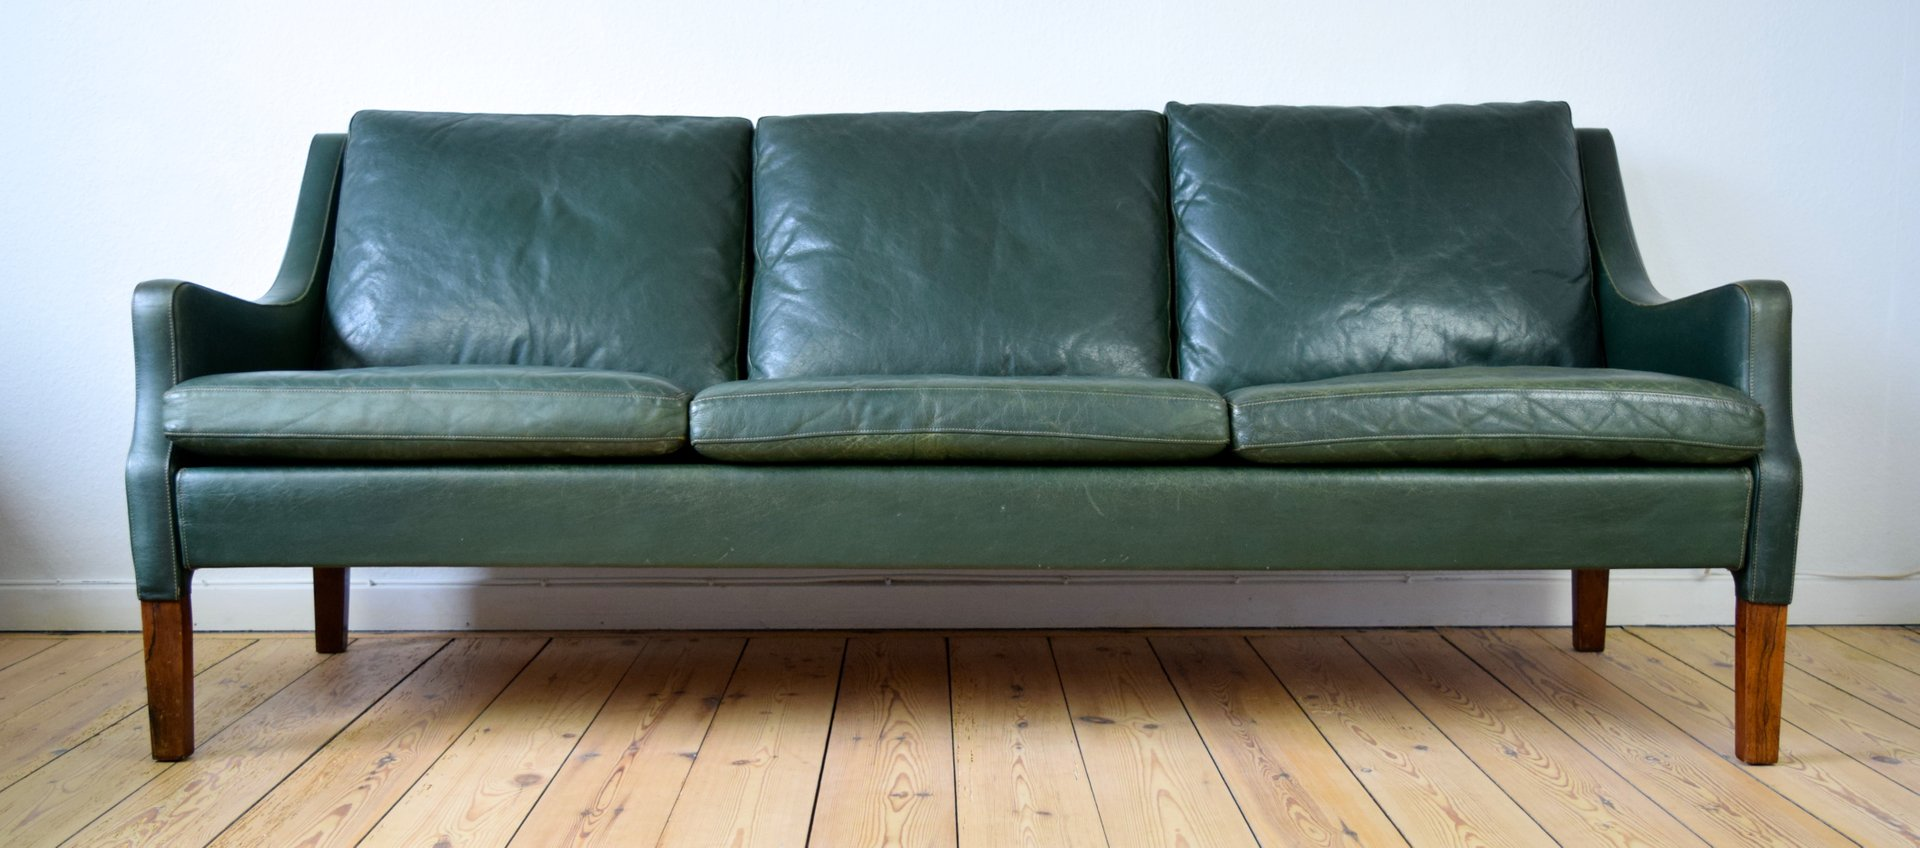 Green Leather Sofa Stunning 1960s Gr Green Leather Sofa At 1stdibs Thesofa